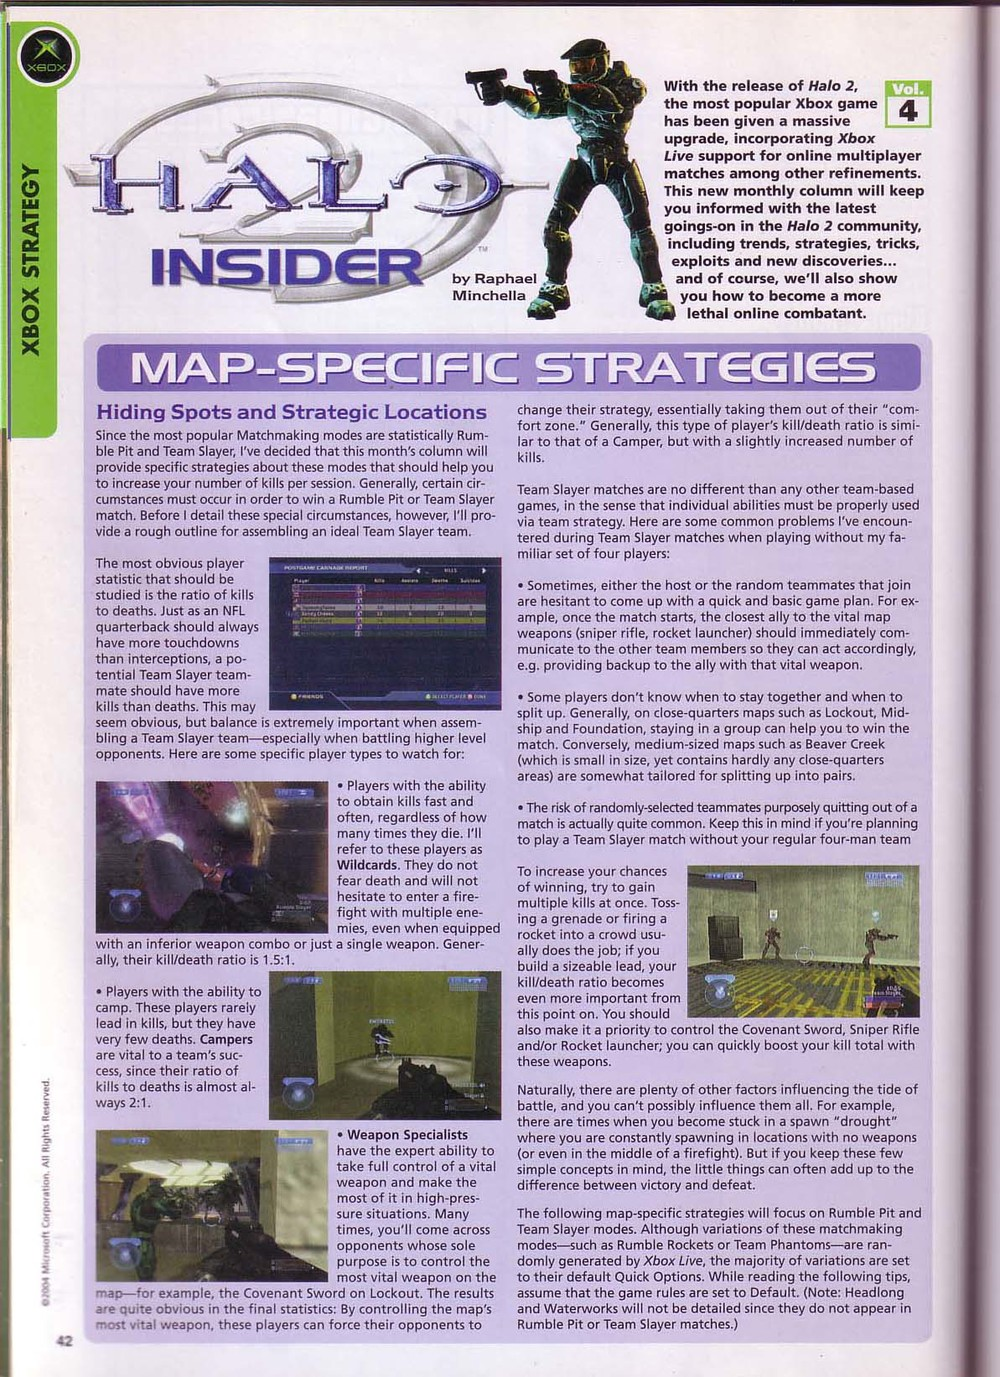 TipsandTricks_April_2005_Halo_pg1_Strategy.jpg